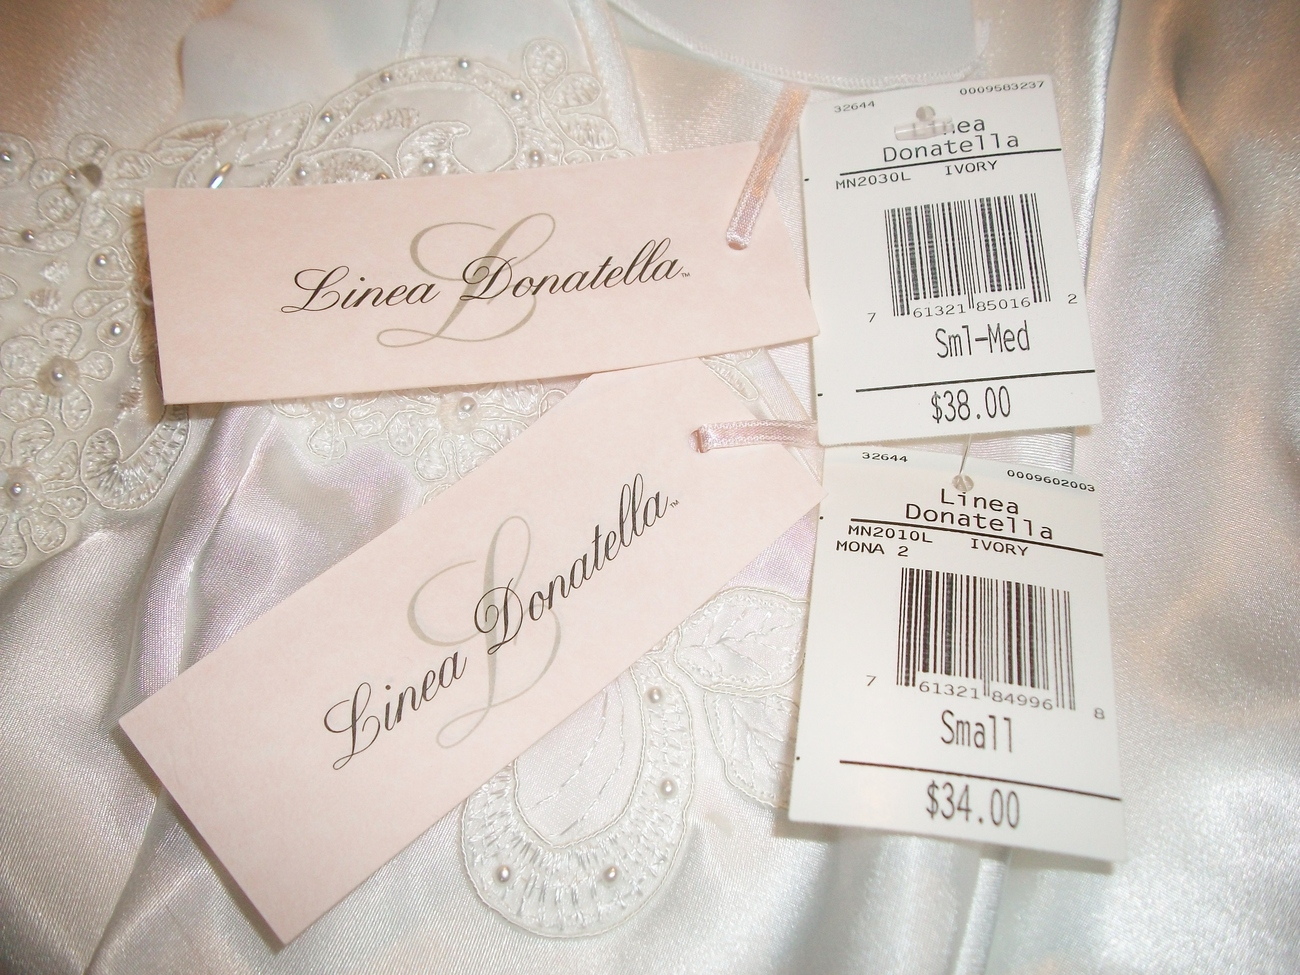 SALE! LINEA DONATELLA Liquid Satin Bridal Chemise & Robe